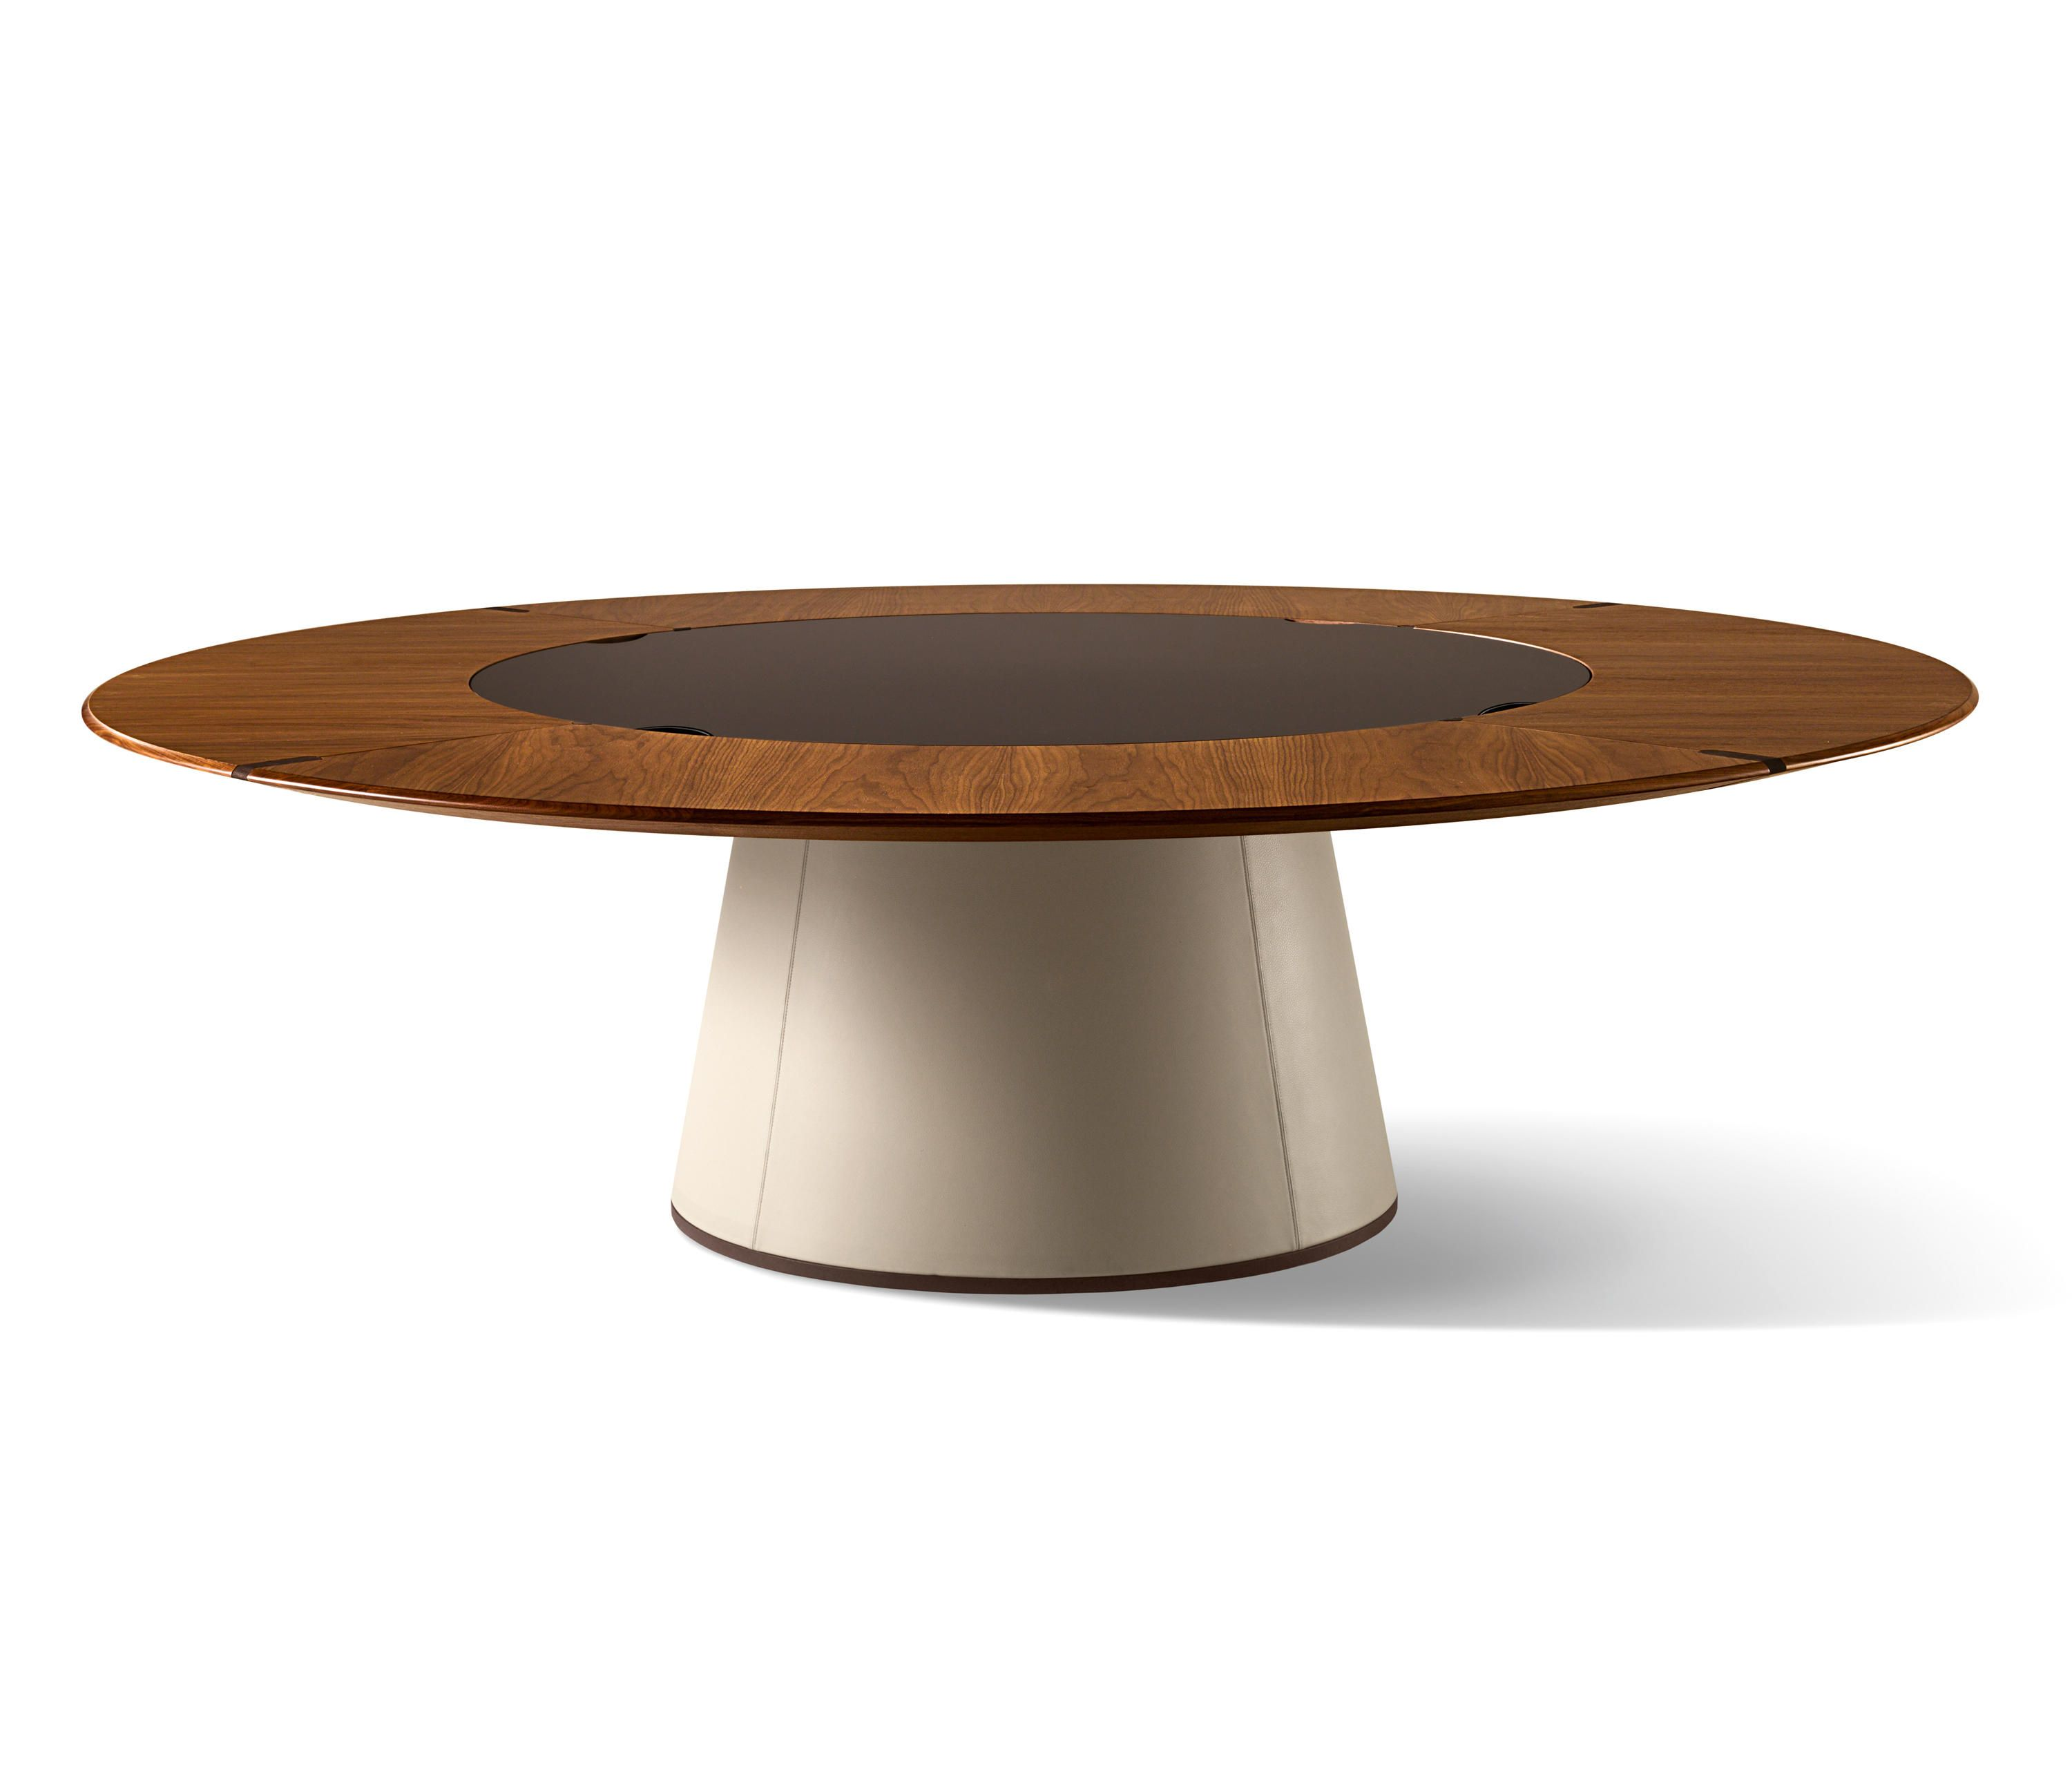 Fang Table Conference Tables From Giorgetti Architonic